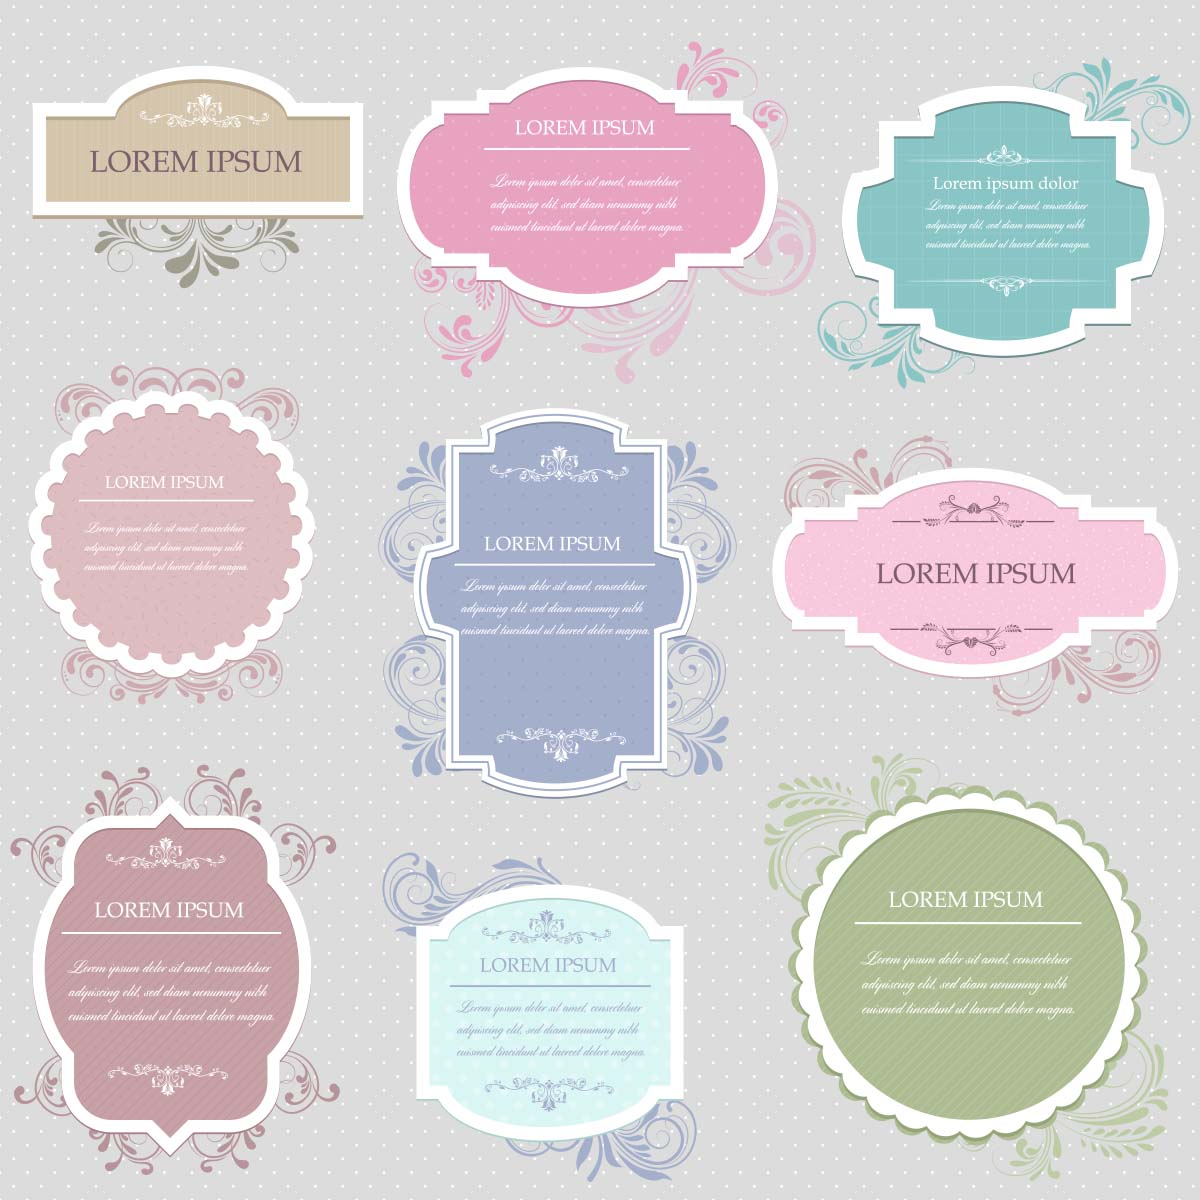 Frames free vector vintage set | Free download